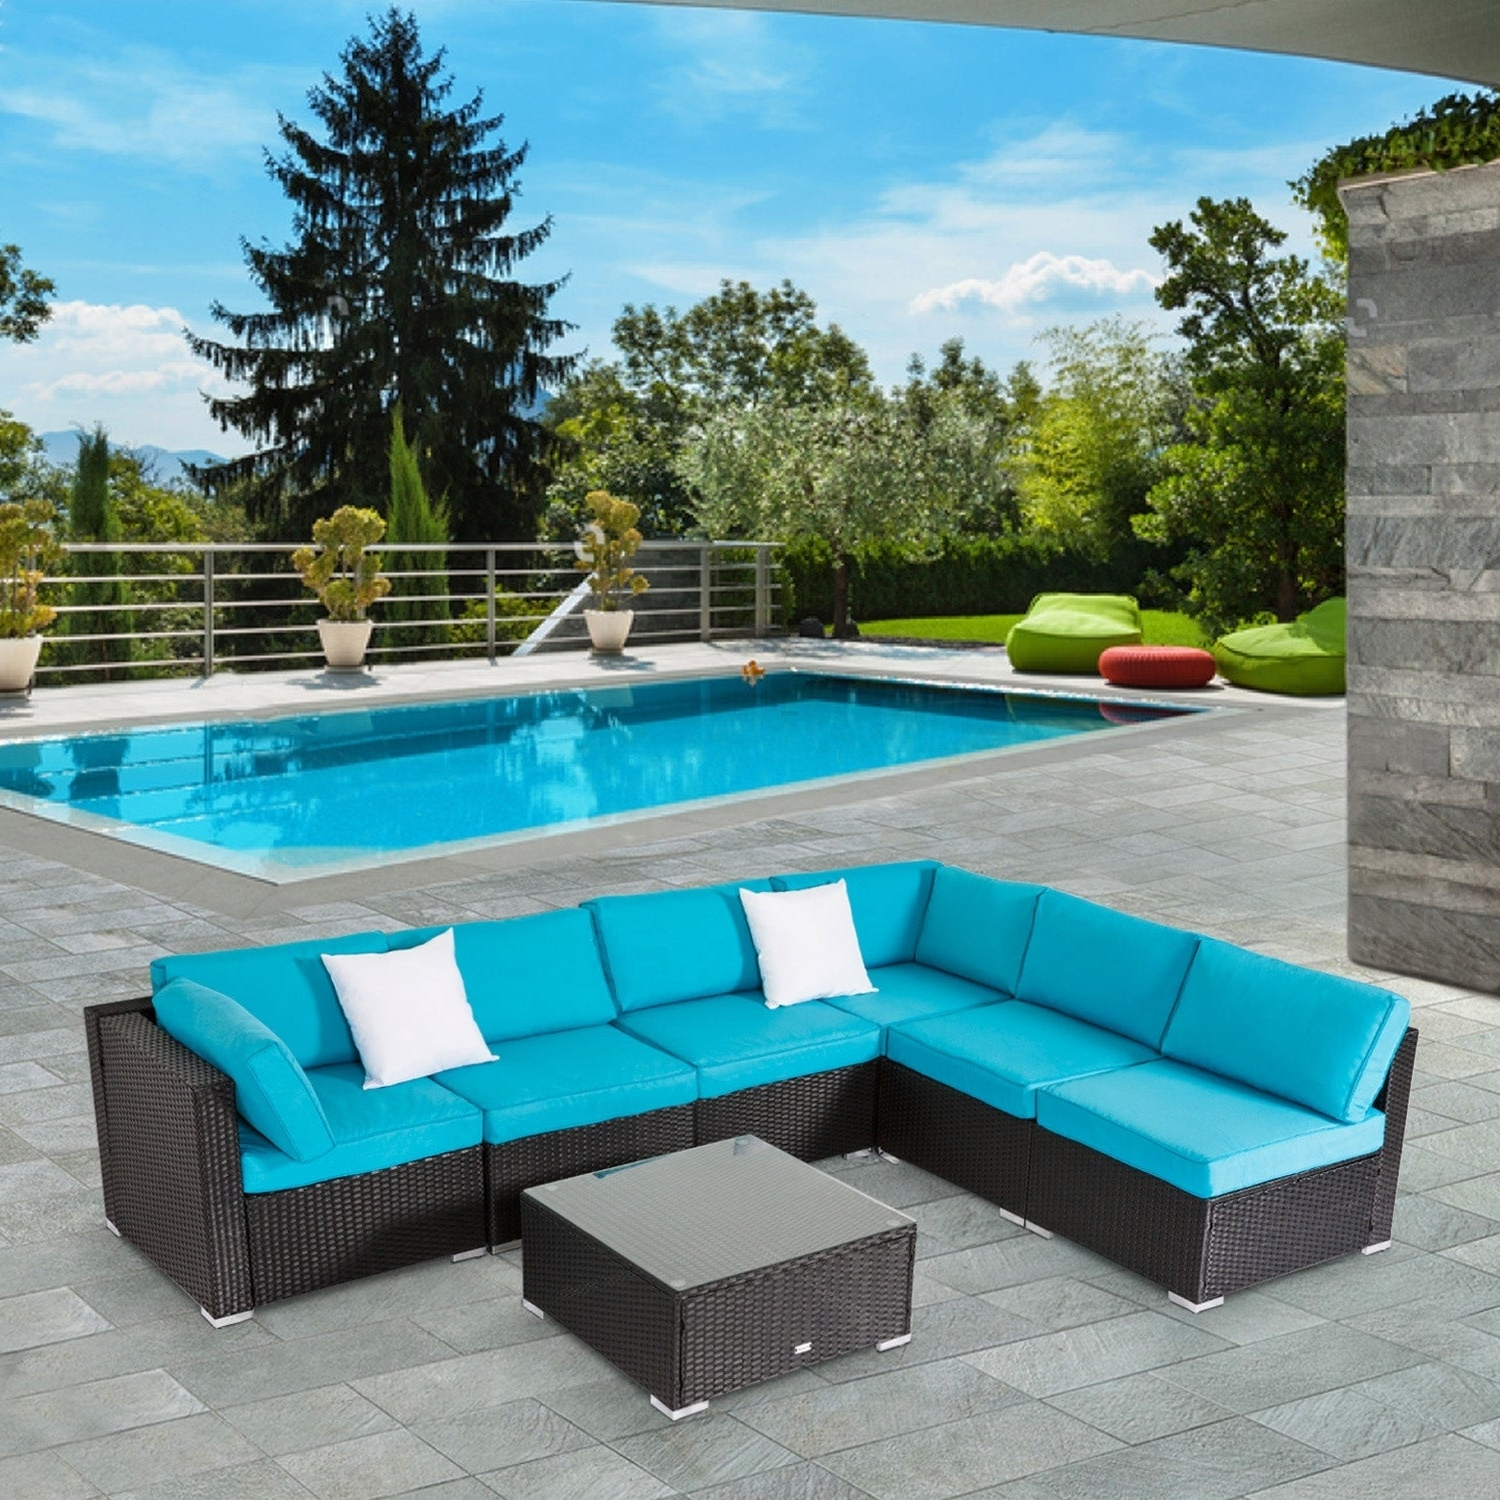 Baltic Patio Sofas With Cushions Intended For Current Kinbor 7 Piece Patio Furniture Set All Weather Outdoor Furniture Sectional Sofa W/ Cushions (View 23 of 25)